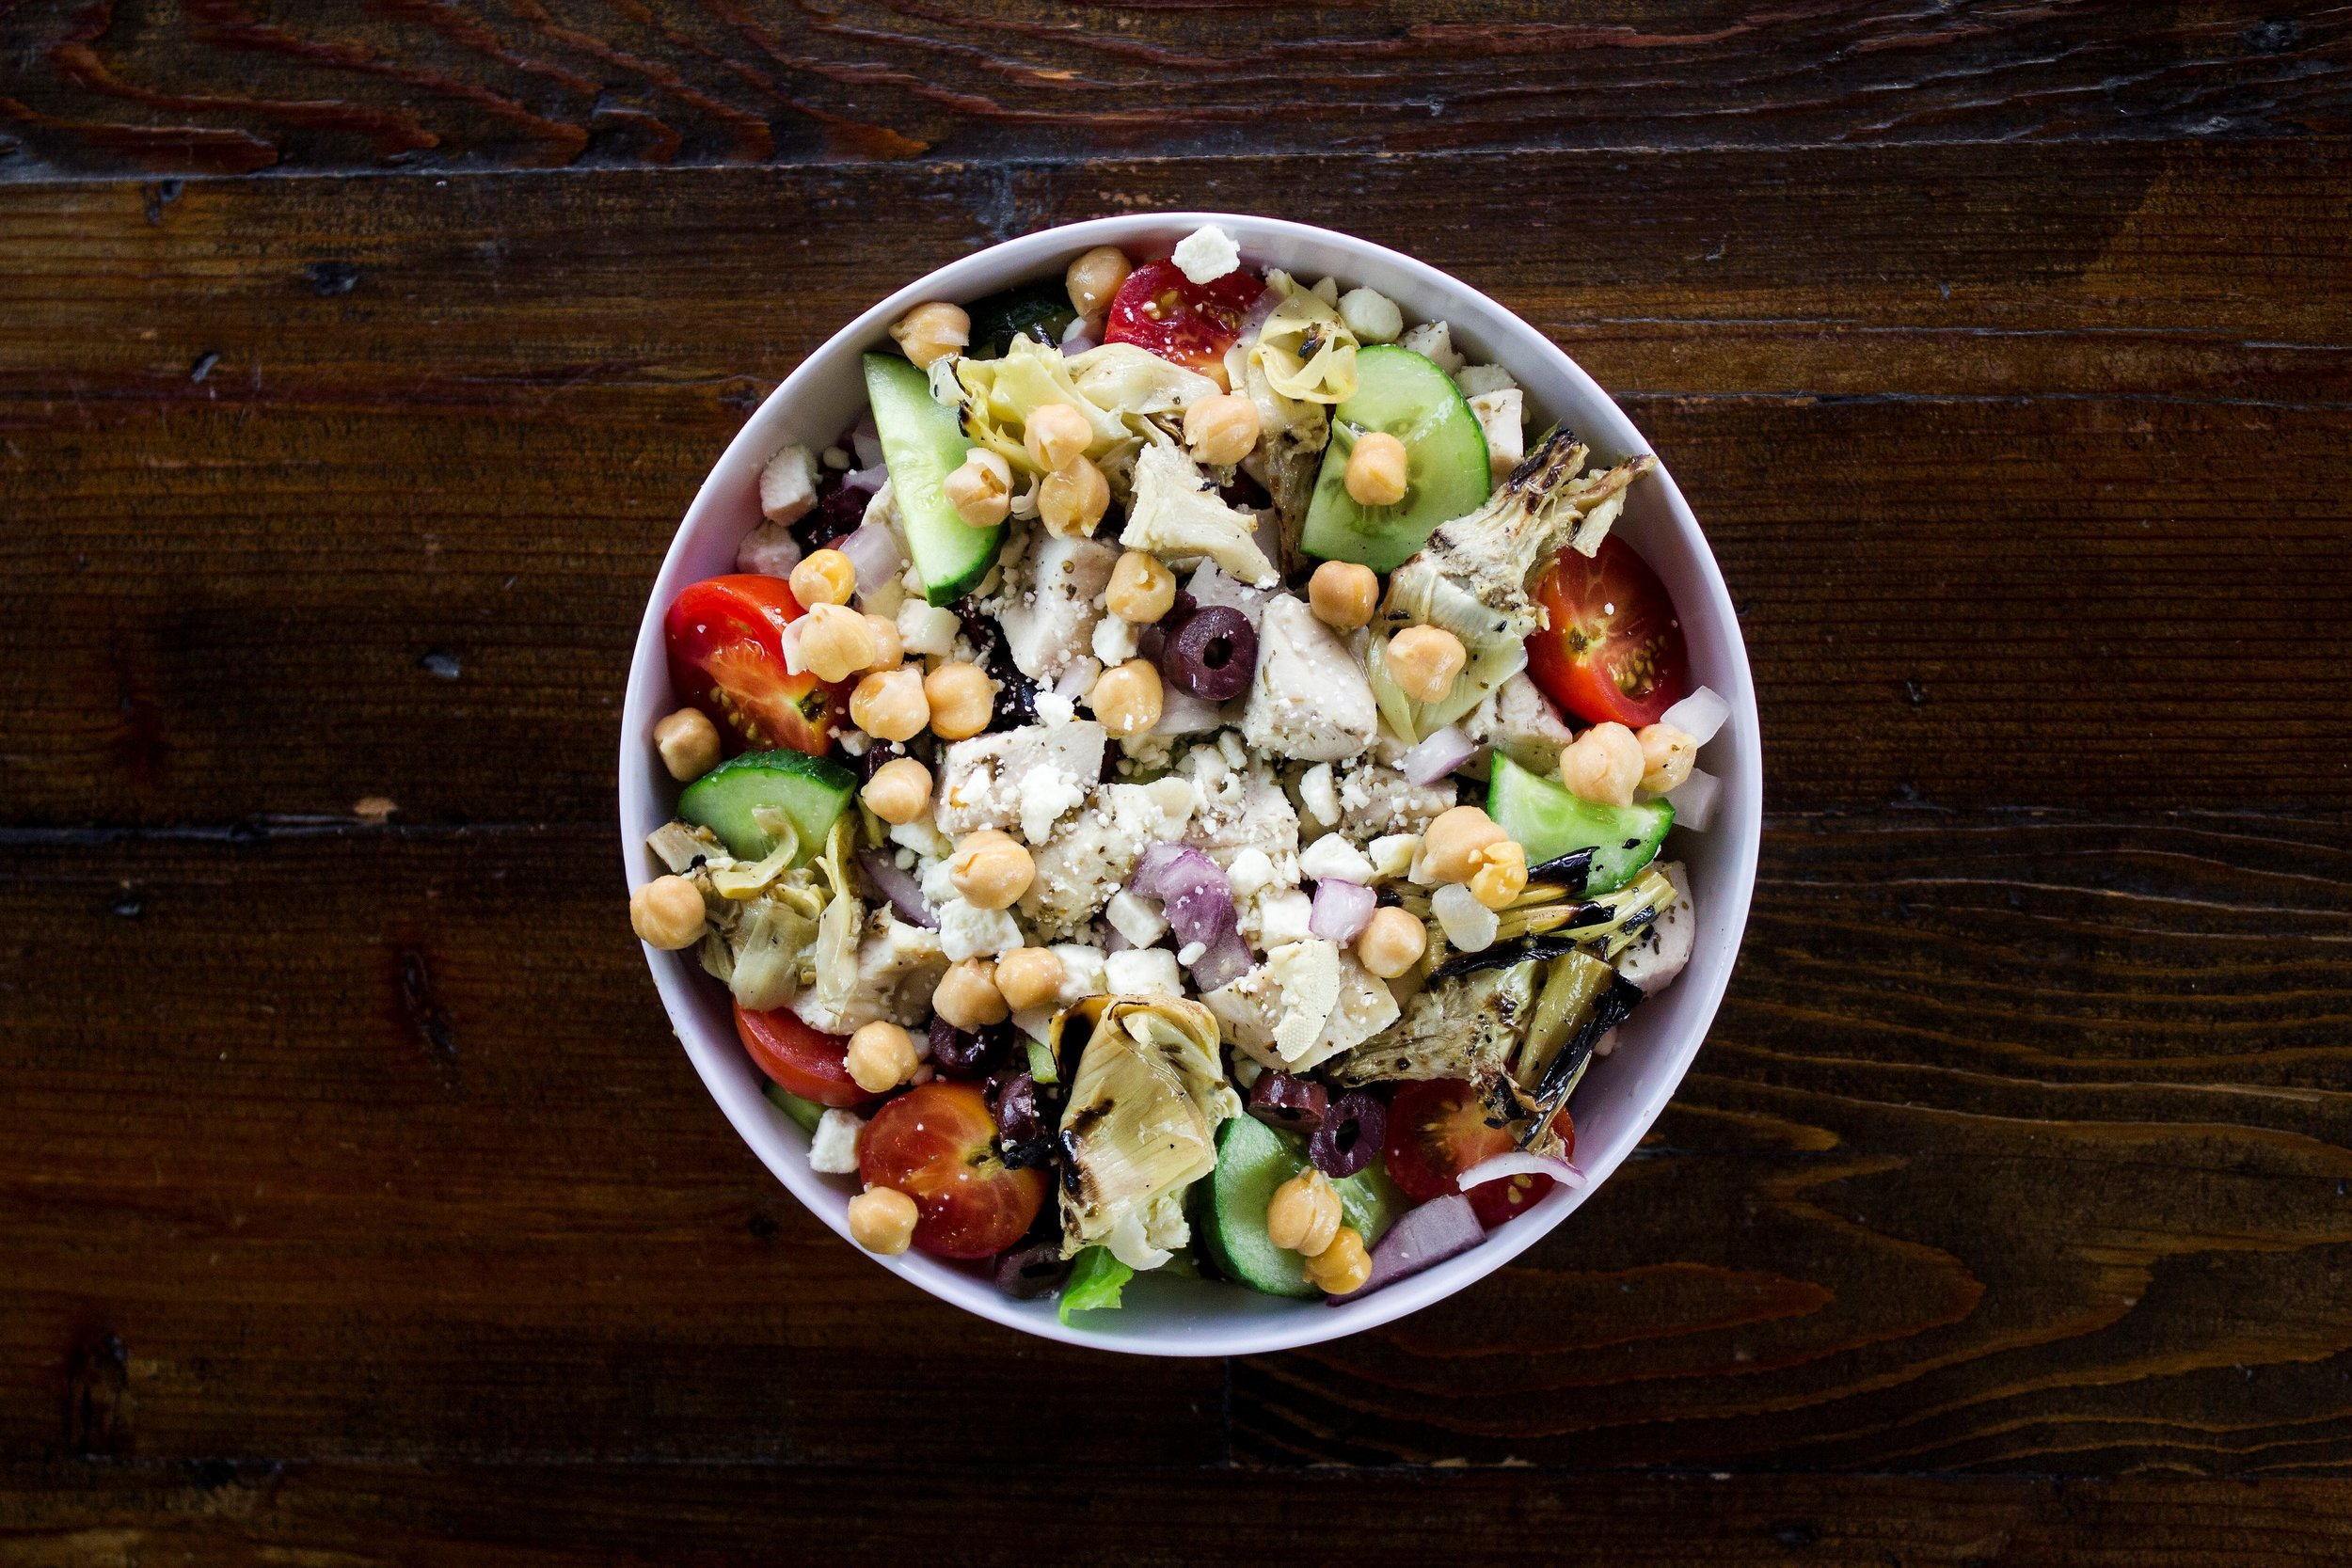 Vegan Greek Salad from The Shack at CityPlace